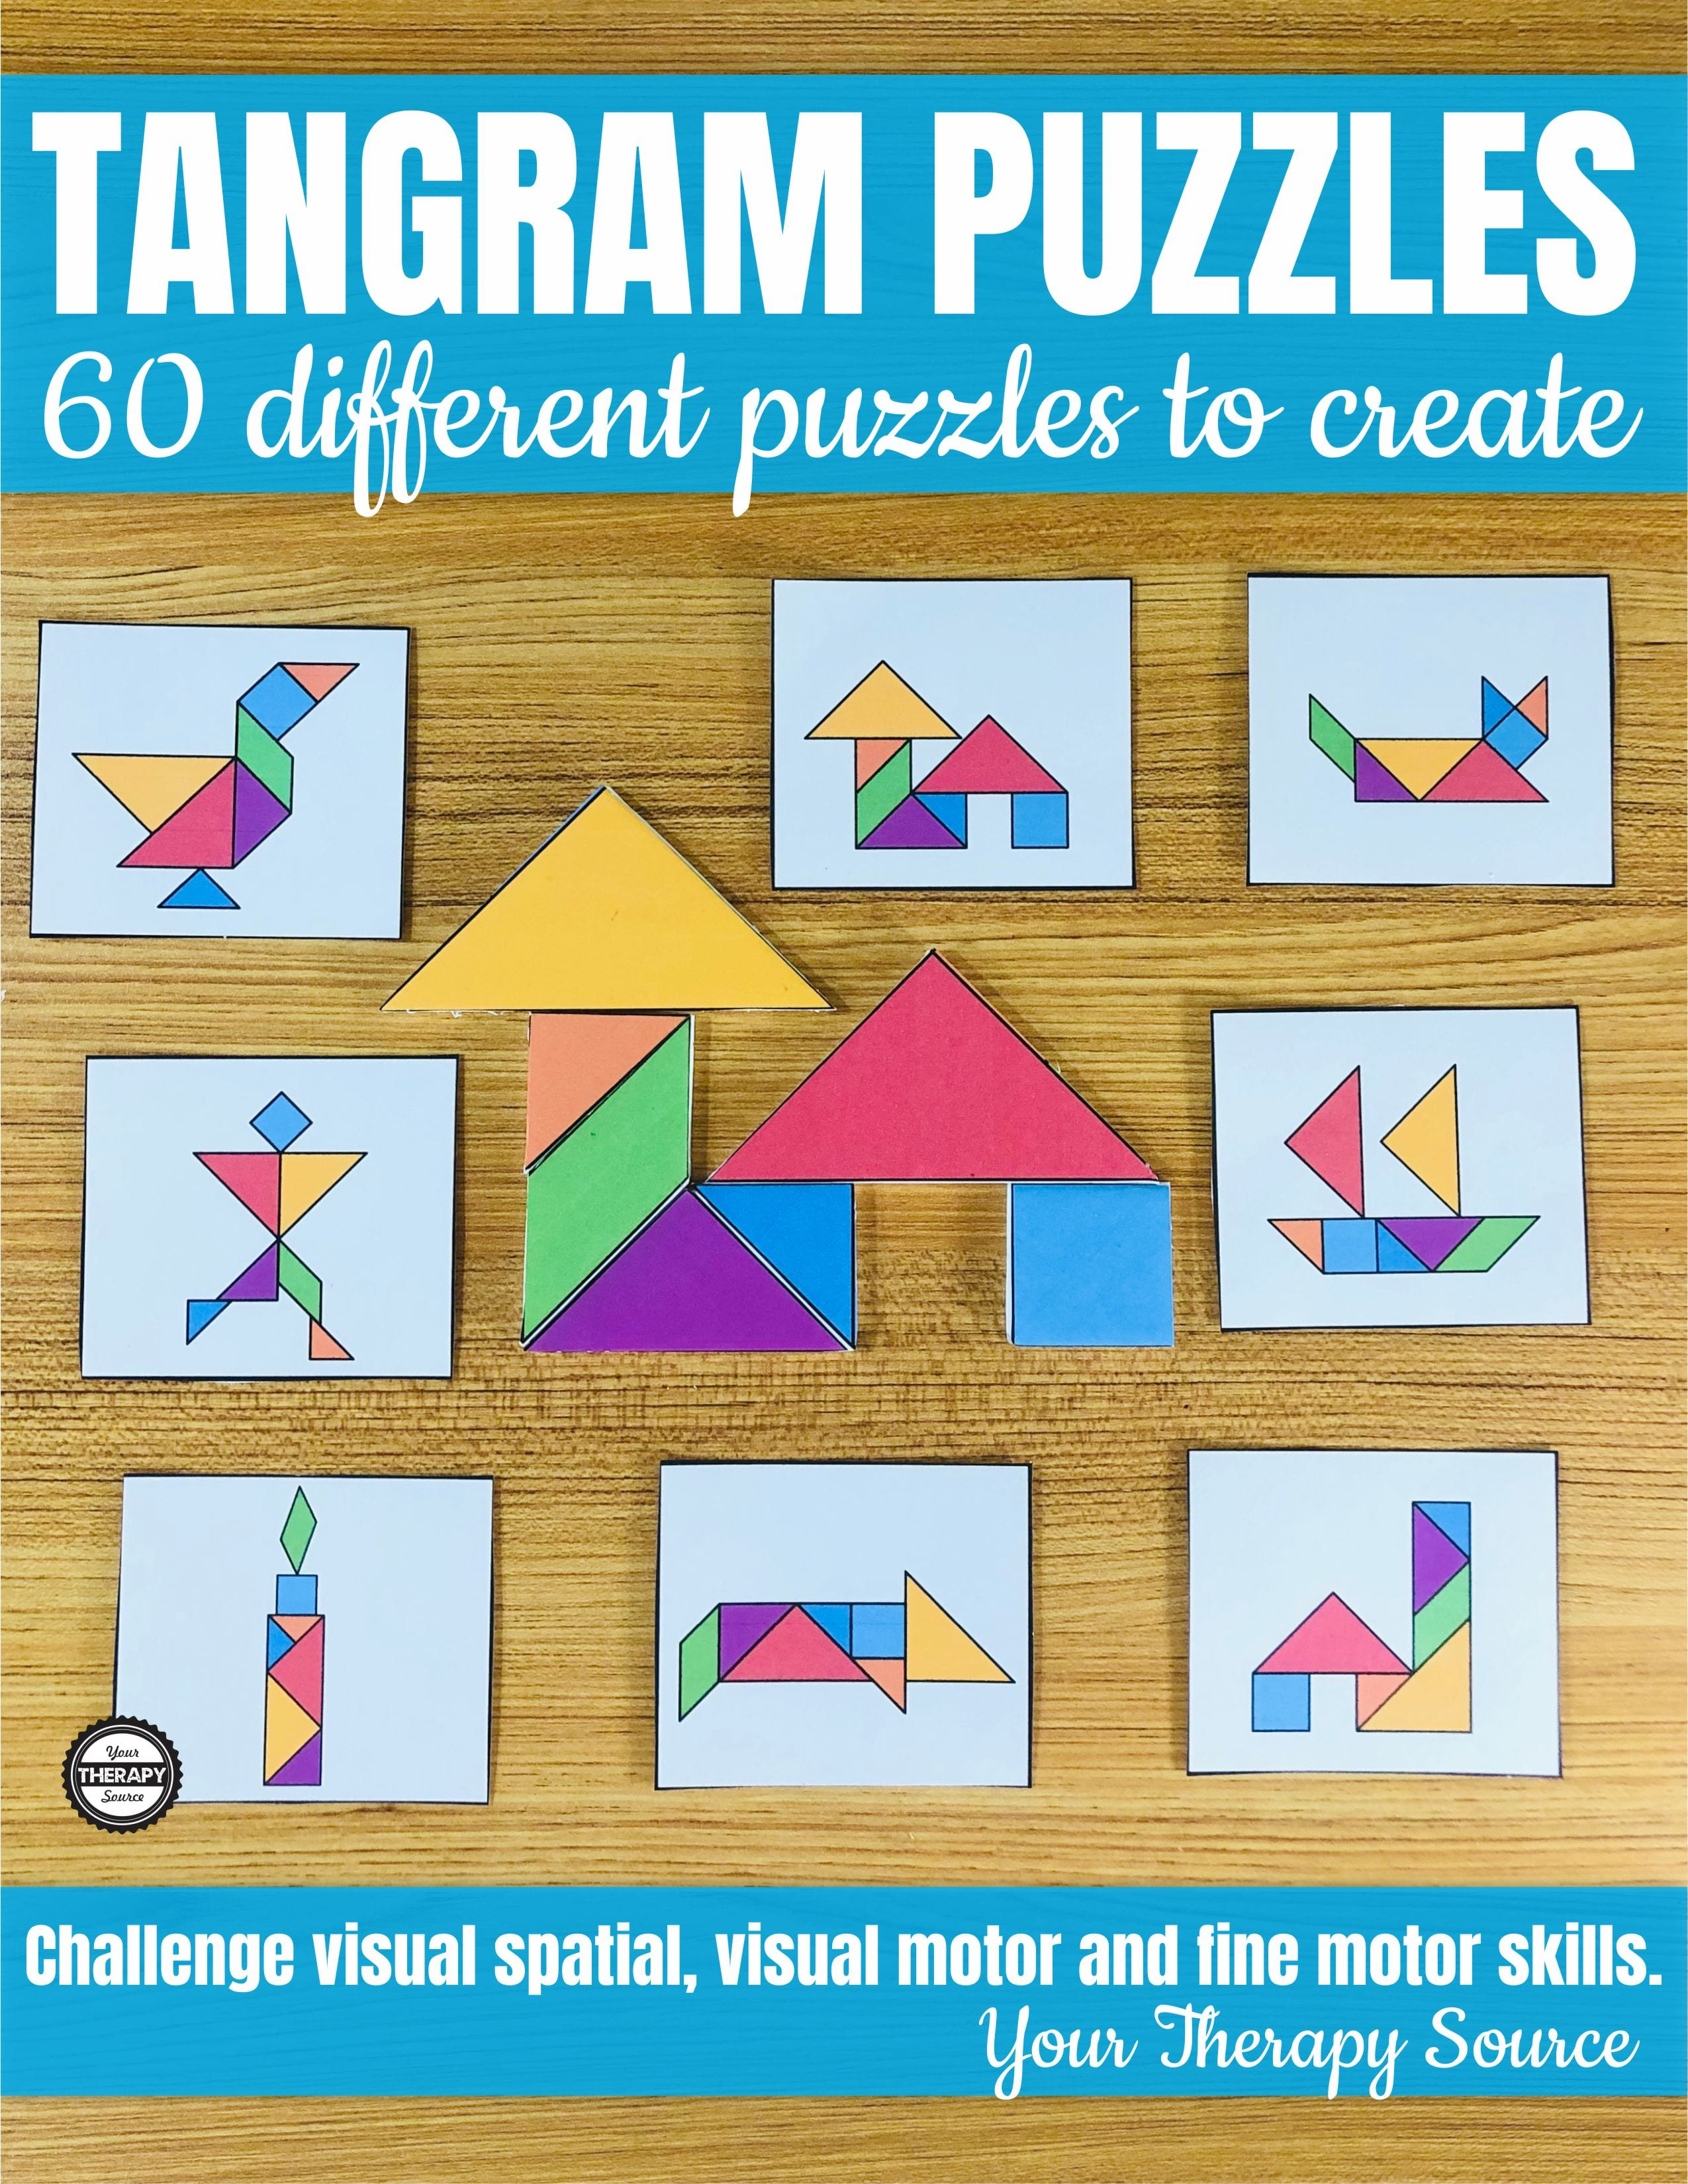 photo regarding Tangram Puzzles Printable identified as Tangram Printable Puzzles